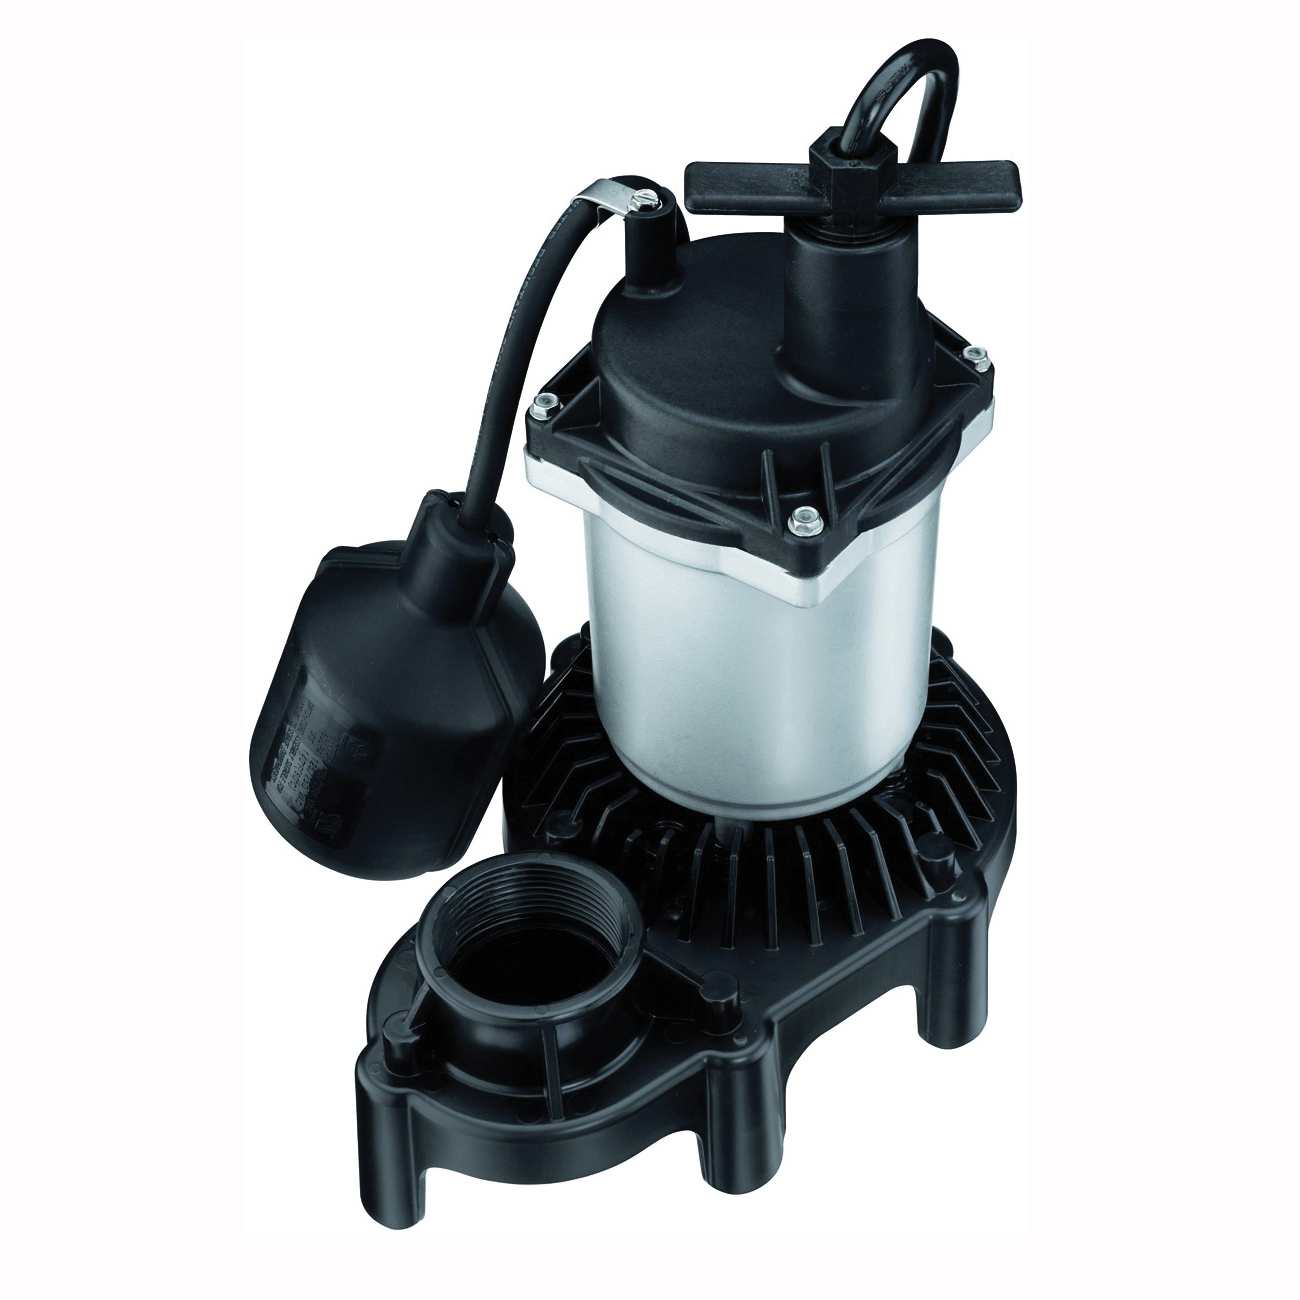 Picture of Sta-Rite Simer 2161 Sump Pump, 1-Phase, 3.9 A, 115 V, 0.25 hp, 1-1/2 in Outlet, 20 ft Max Head, 1500 gph